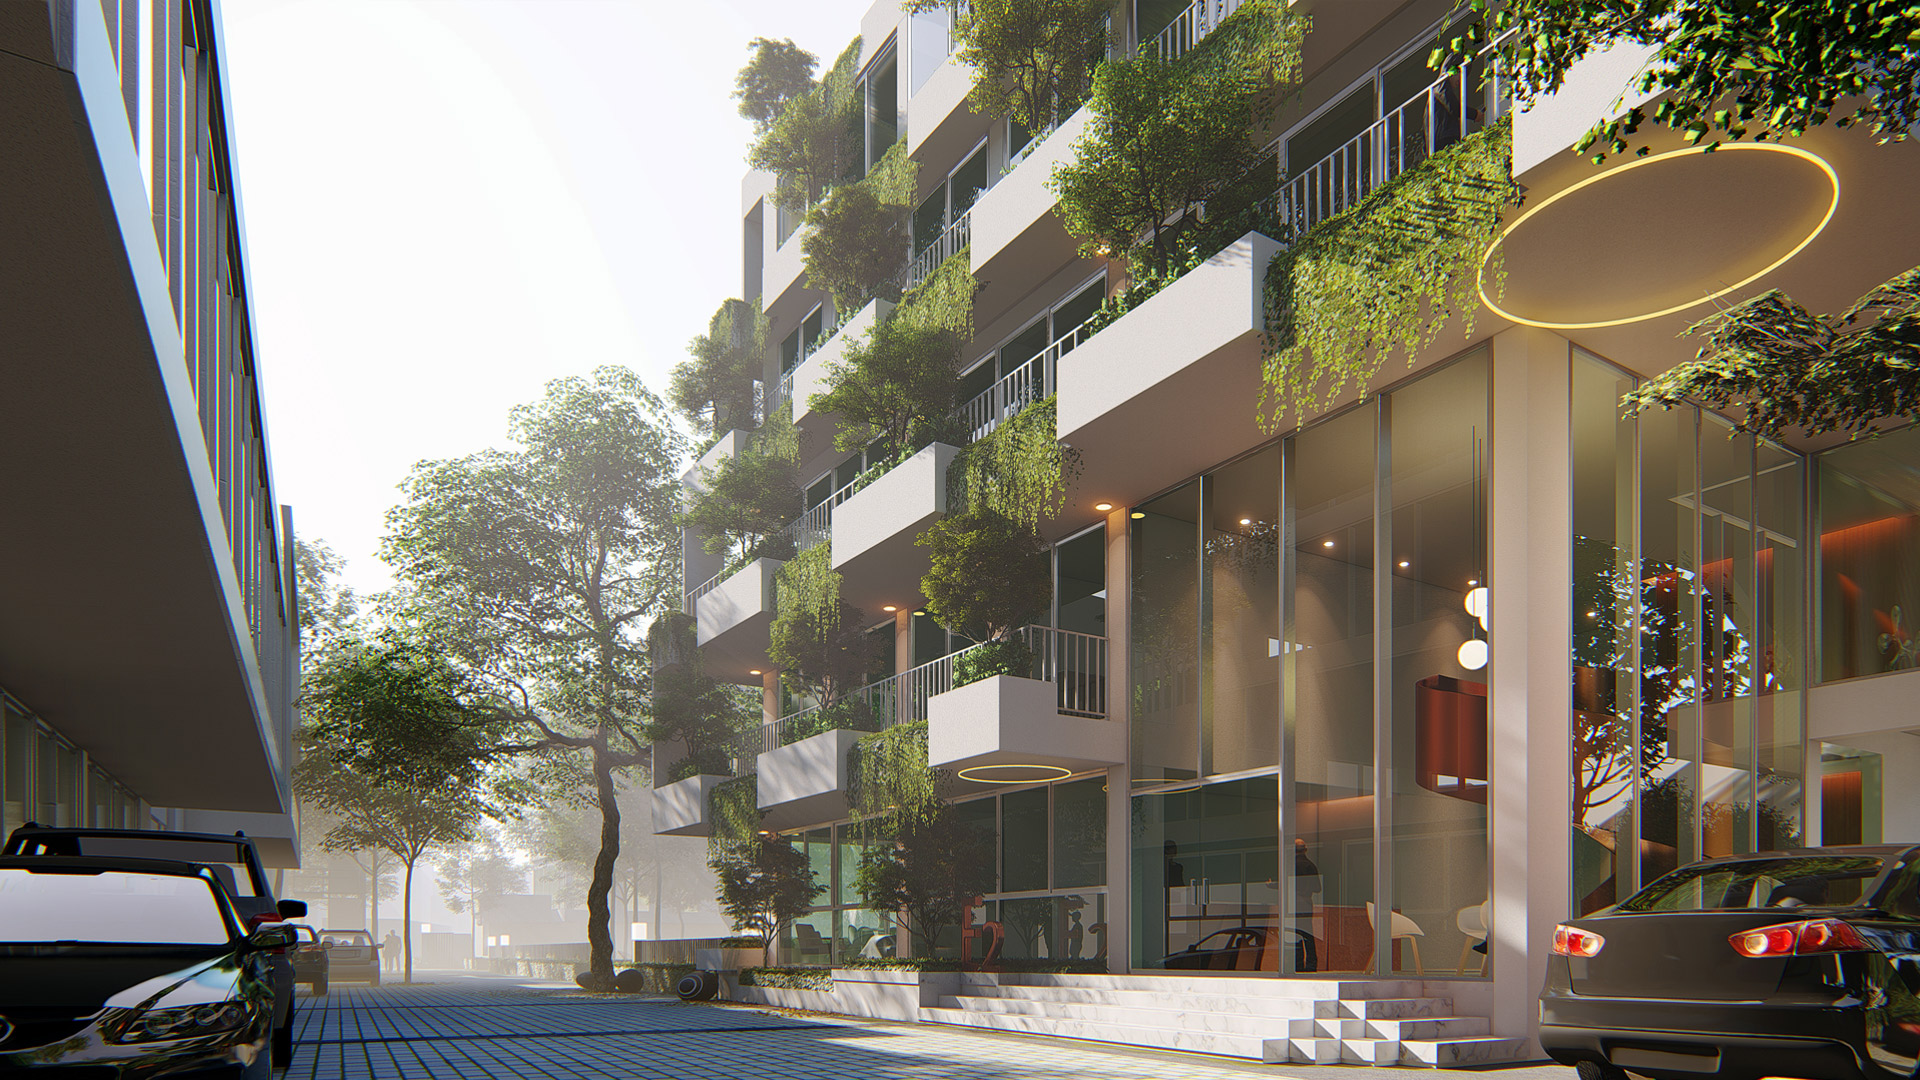 MAP_Design_Architecture_Residential_Architect_Kiran_Mathema_Balcony_Planted_Modern_Green_Facade